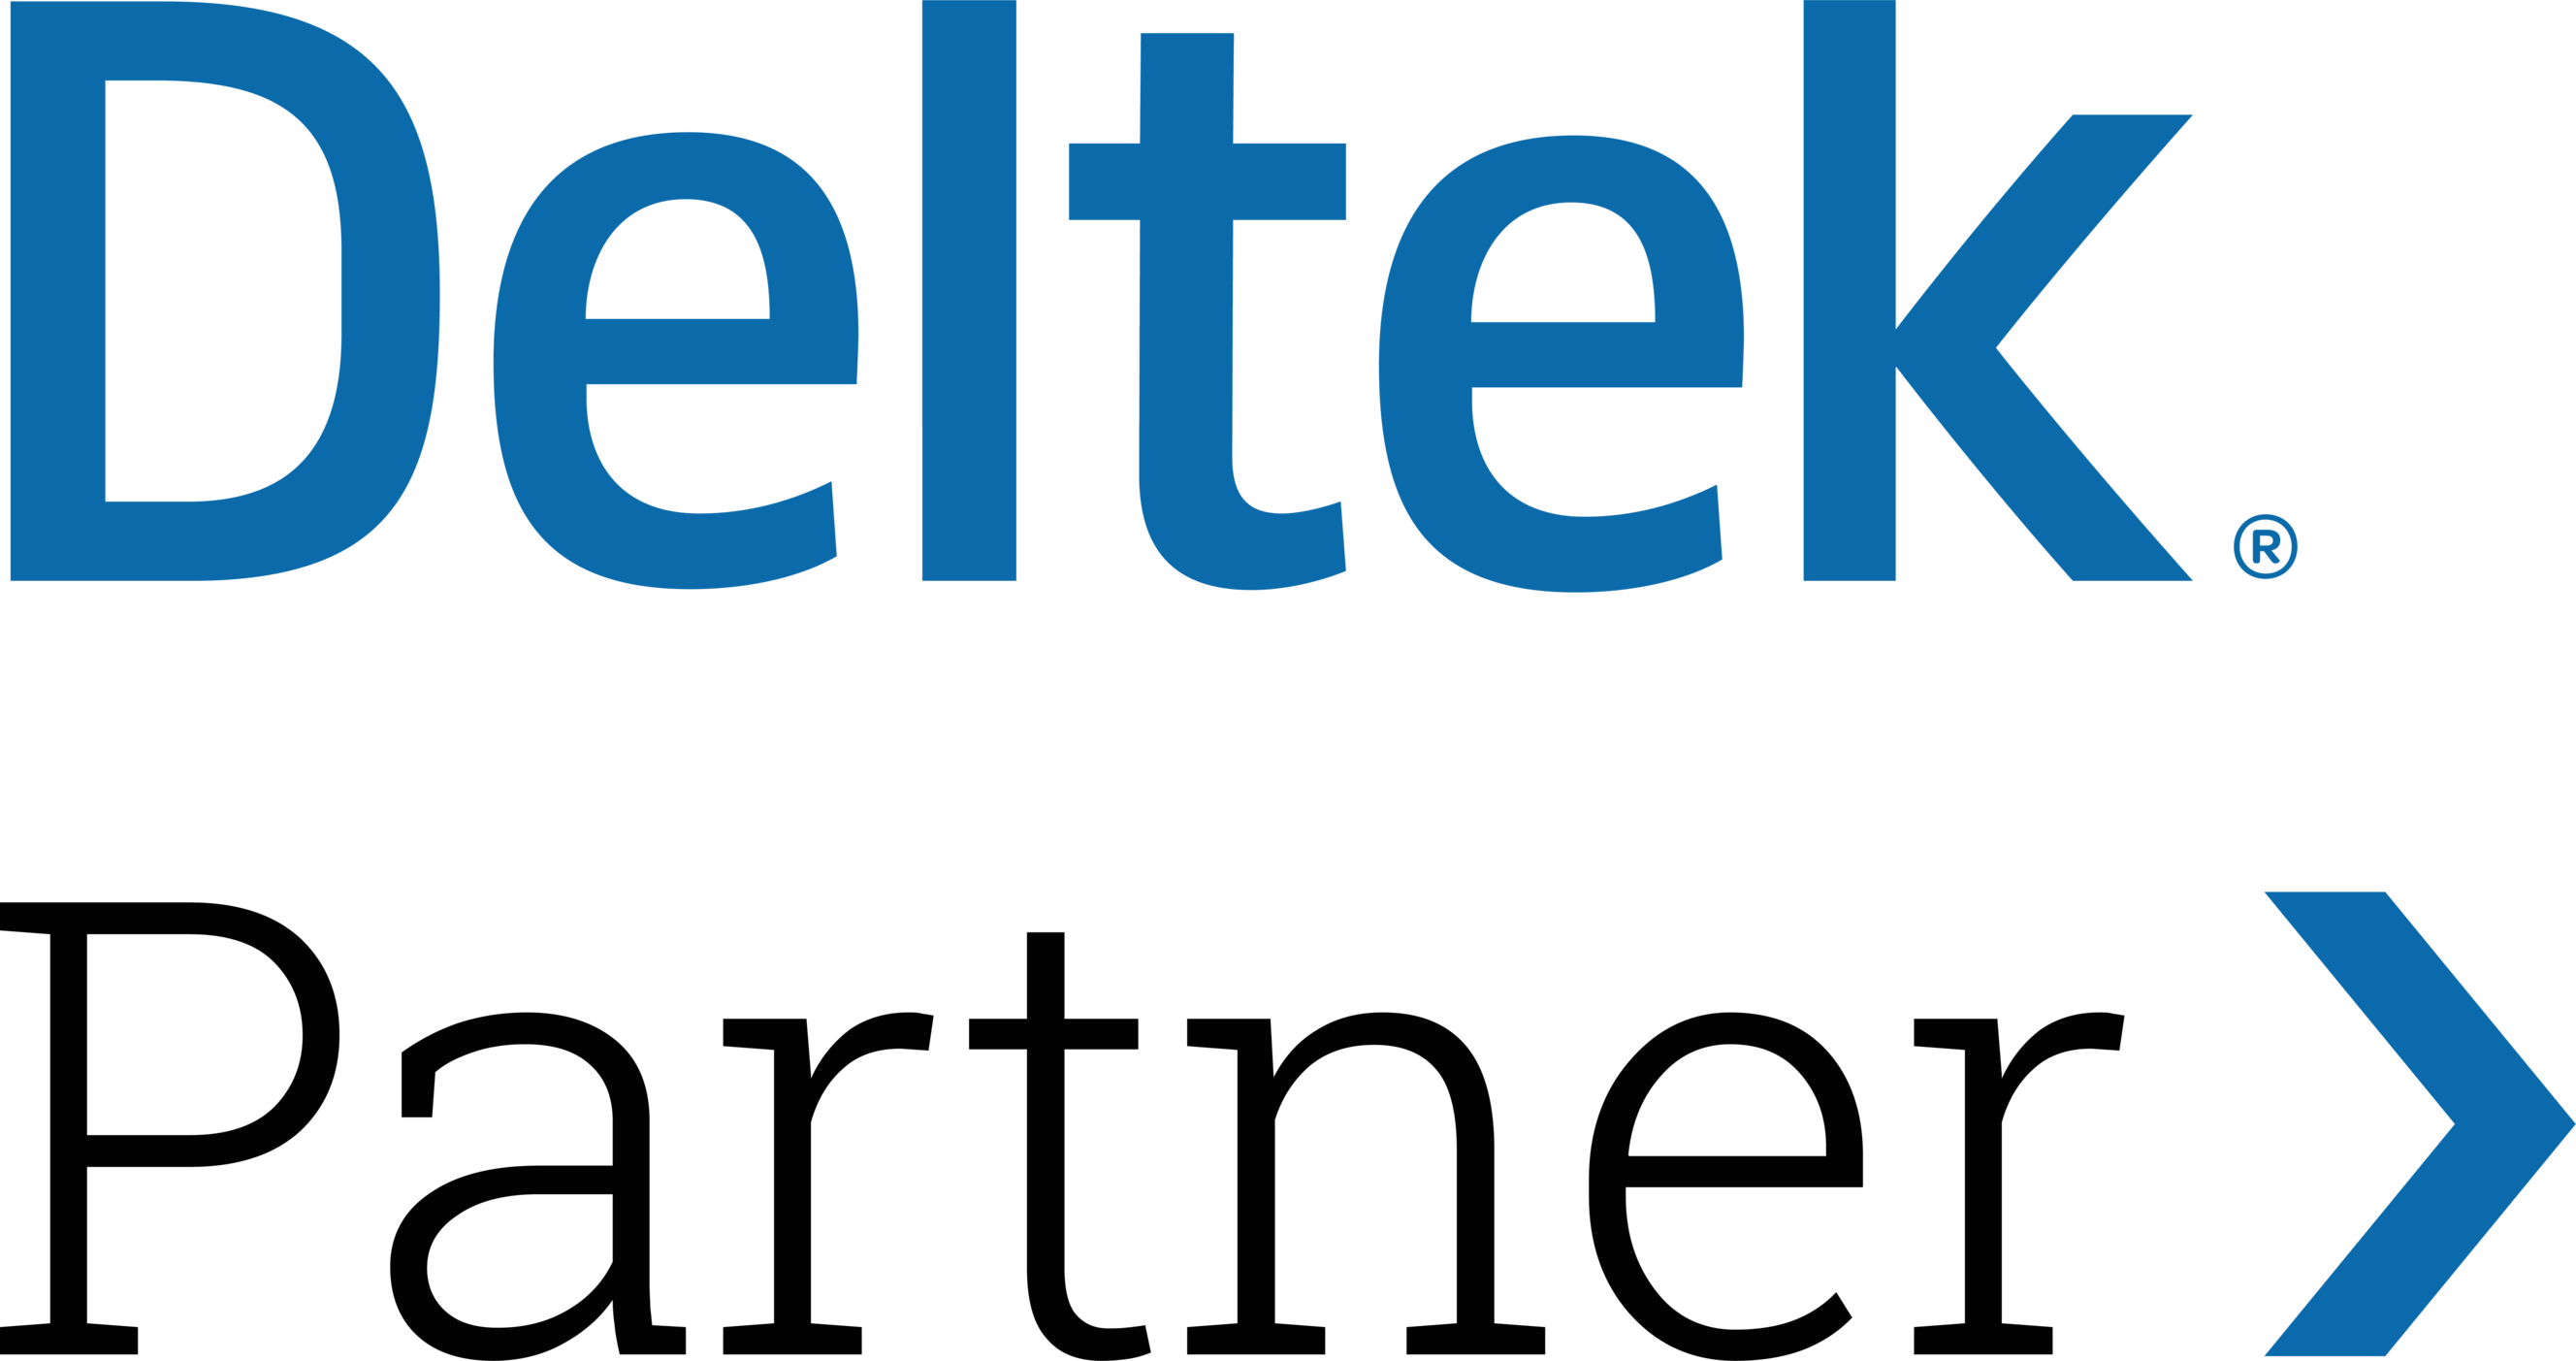 Pinnacle Announces Strategic Partnership With Deltek to Implement PPM Solutions